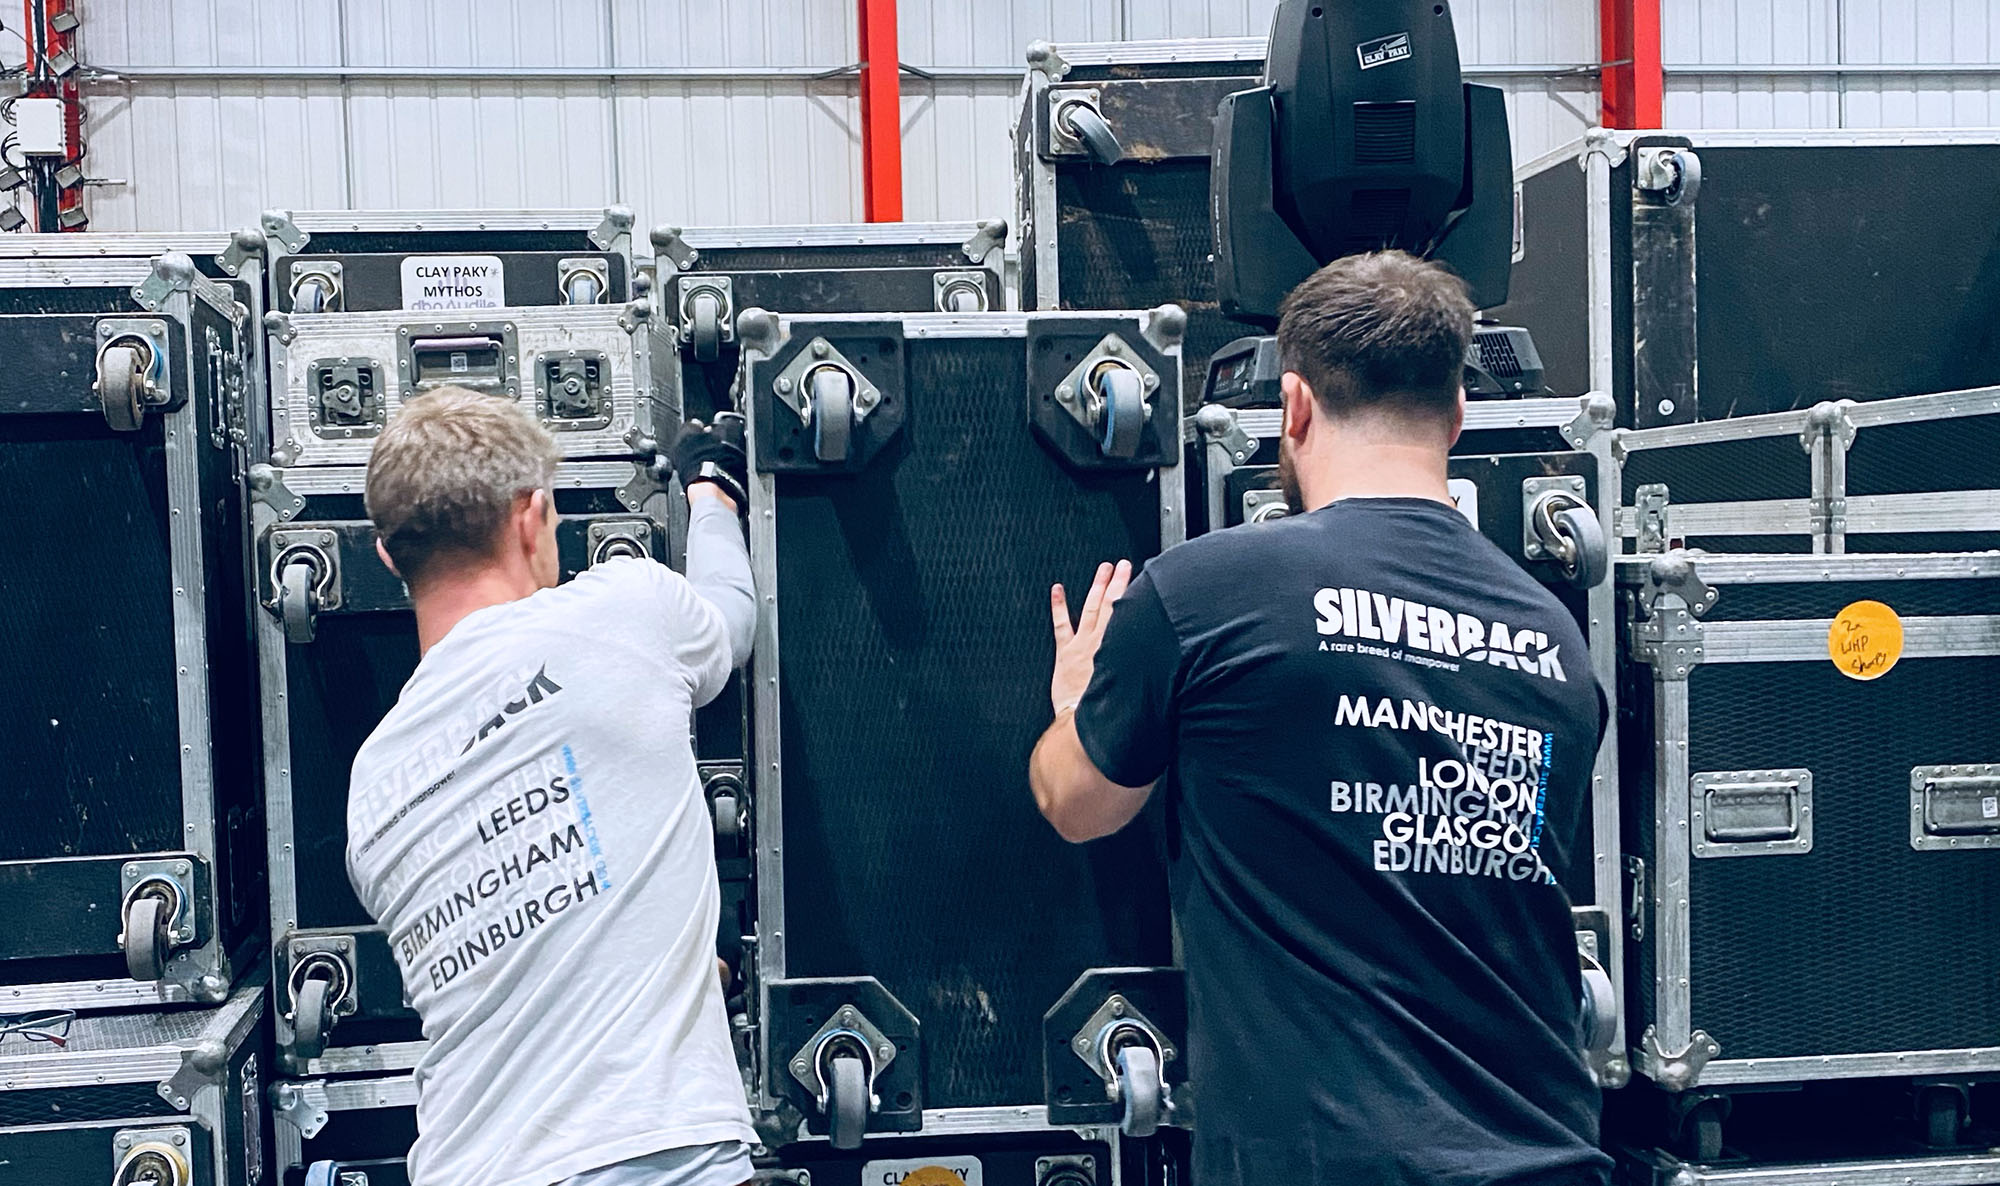 Two Silverback crew lifting large box together